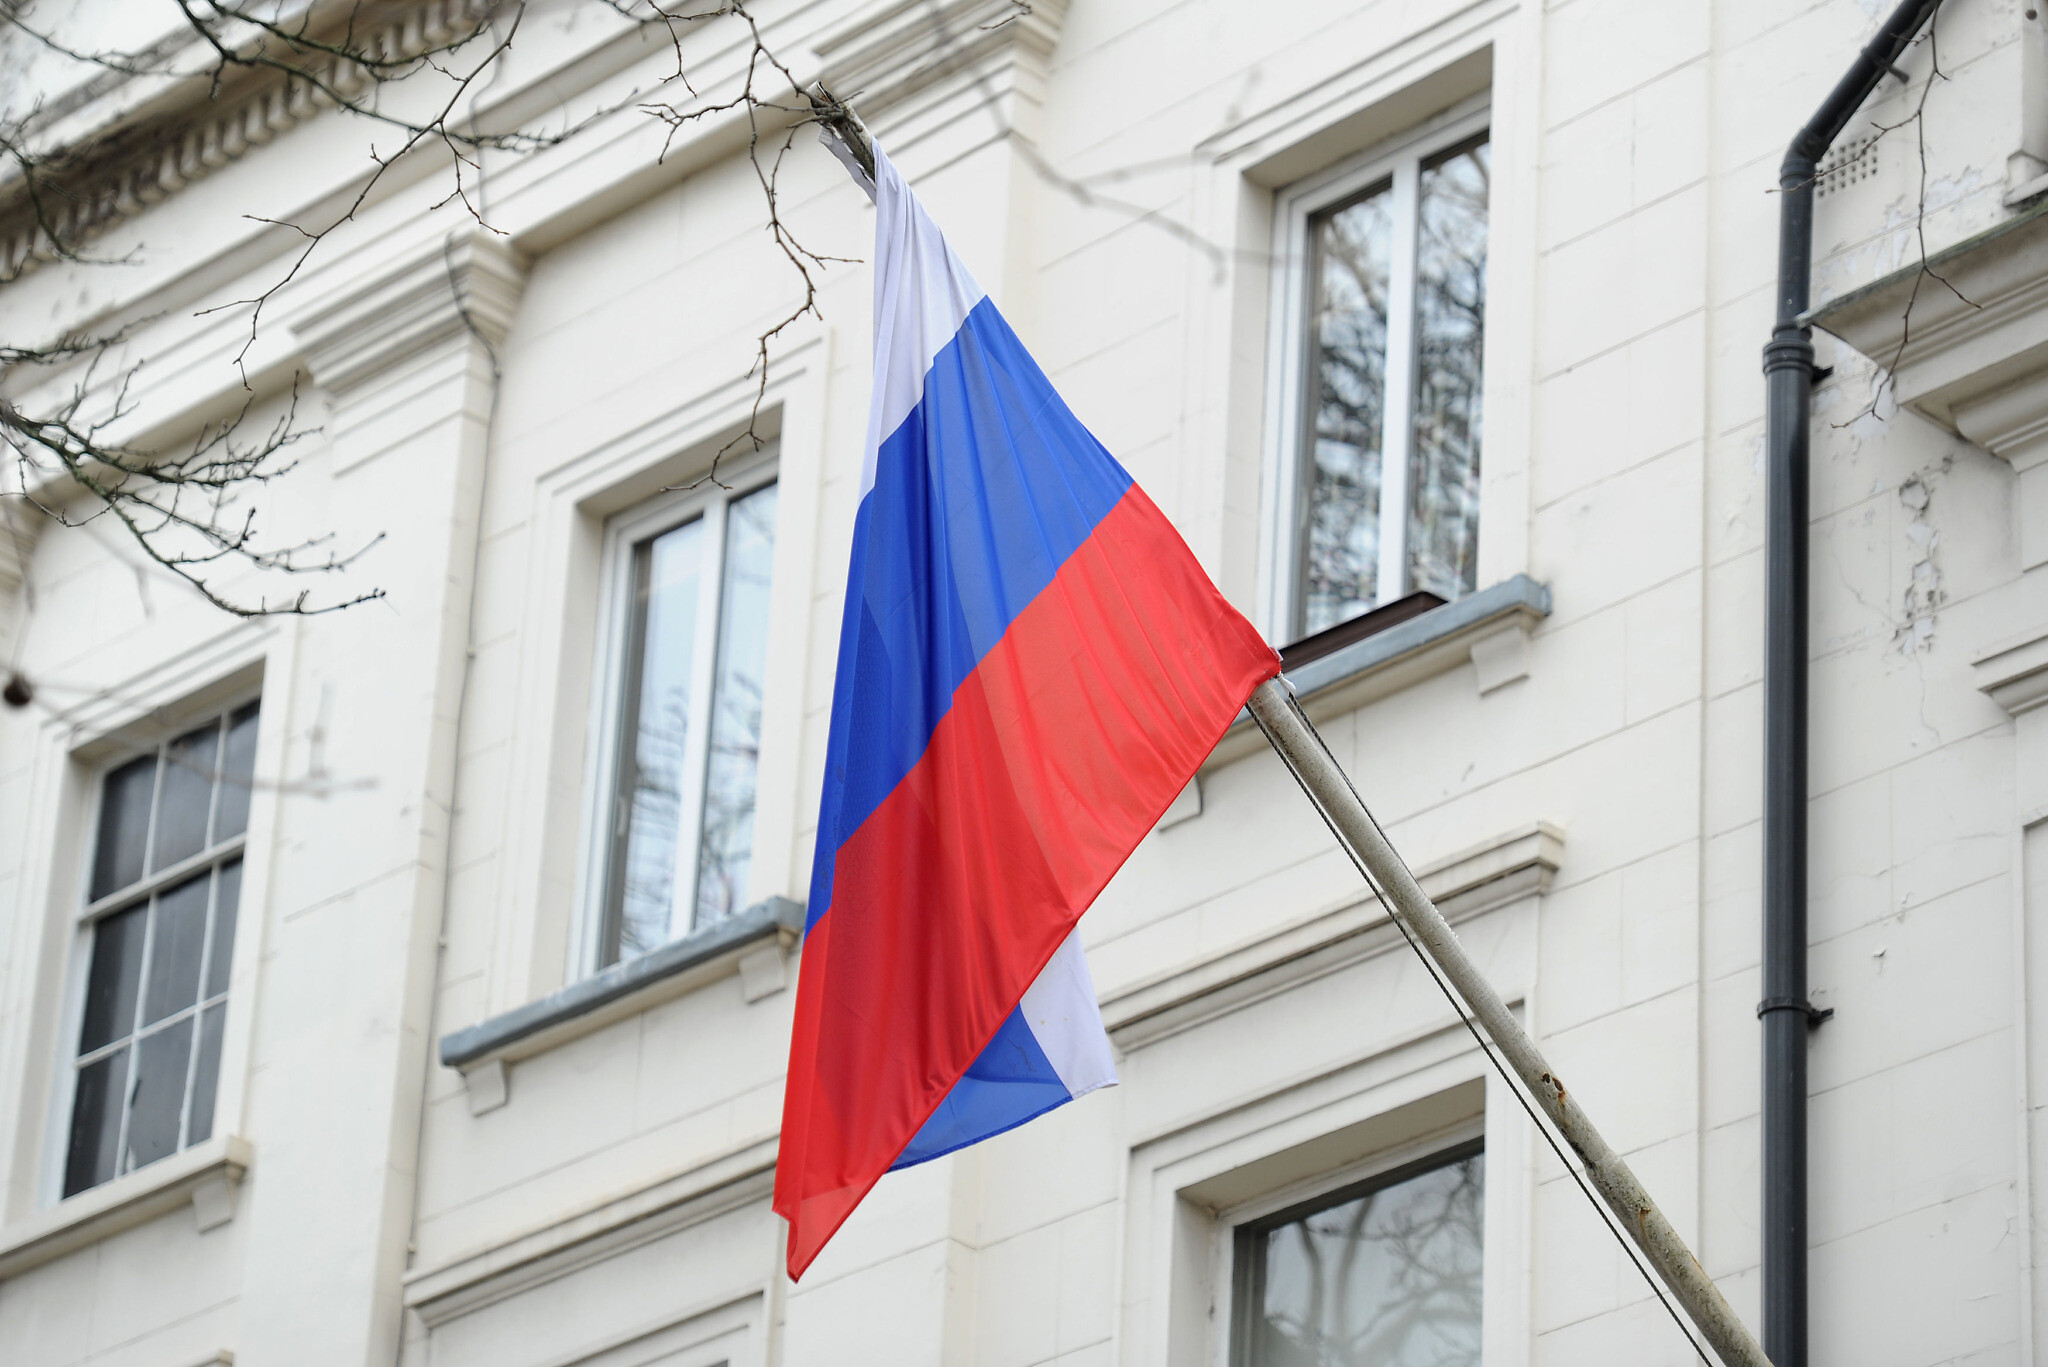 Welcome to Londongrad: Scandal of blind eye to interference by Russians